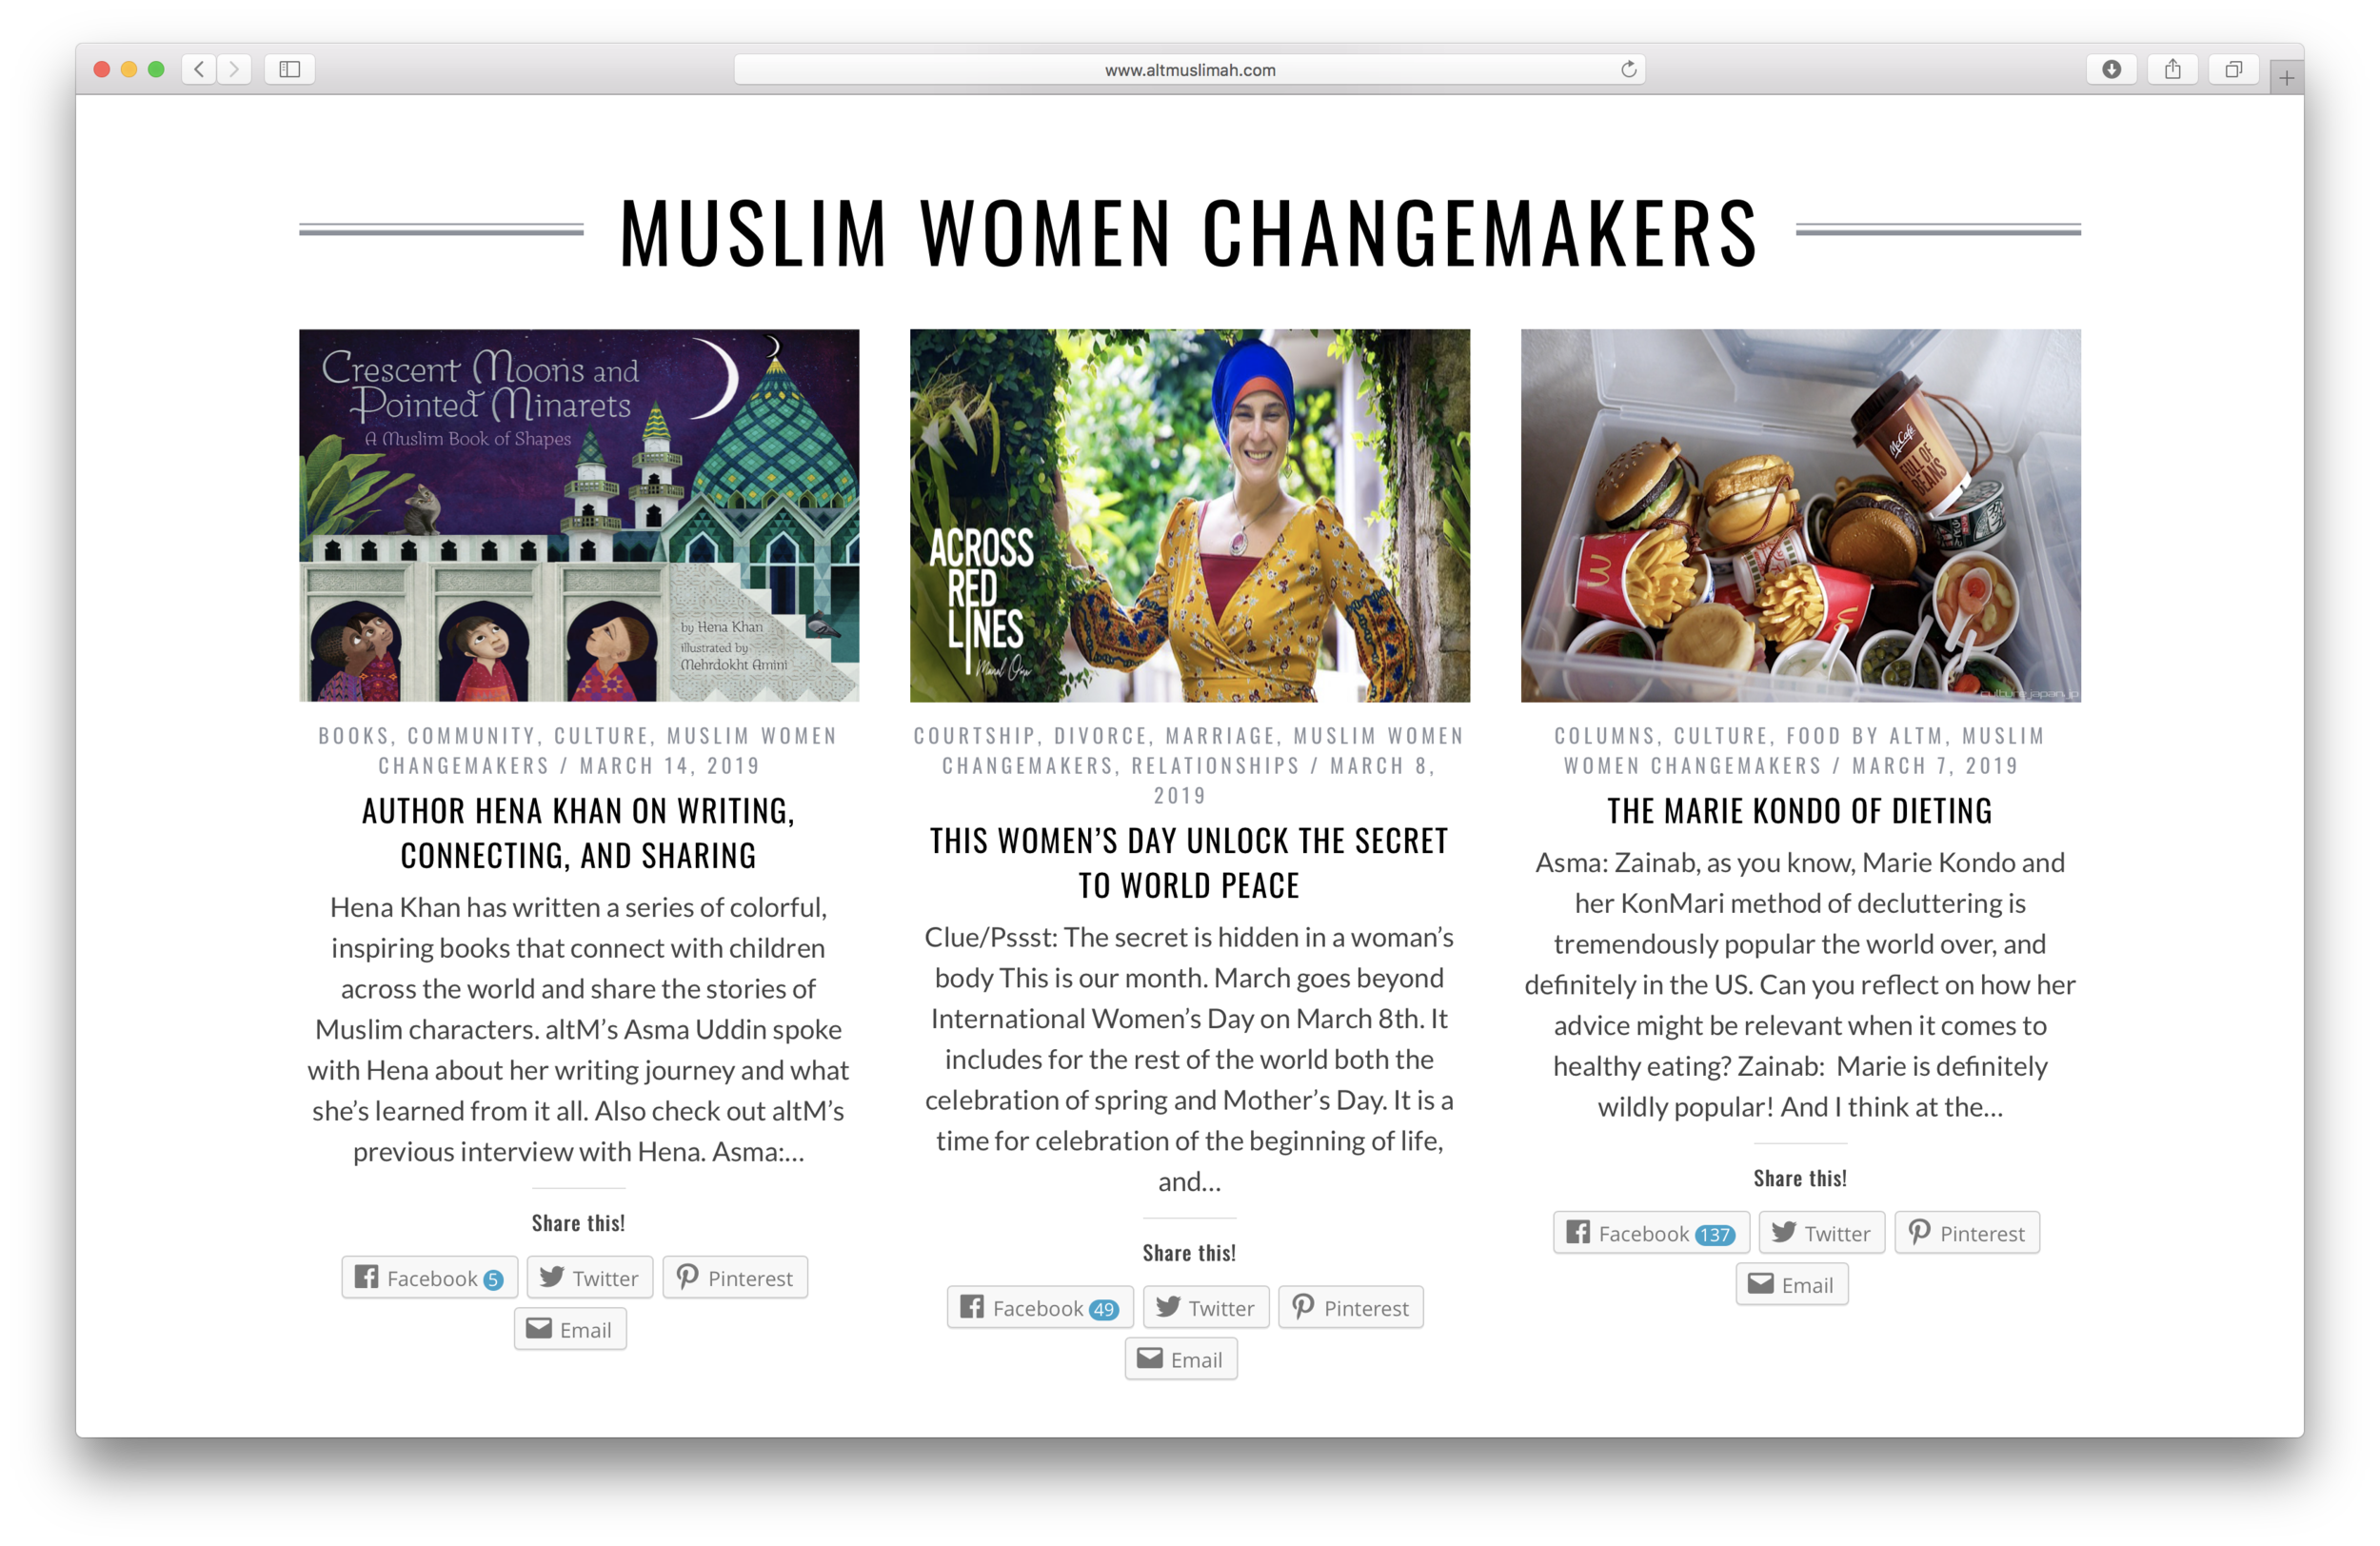 Manal Omar and Across Red Lines have been selected to be regular contributors to  altmuslimah.com .